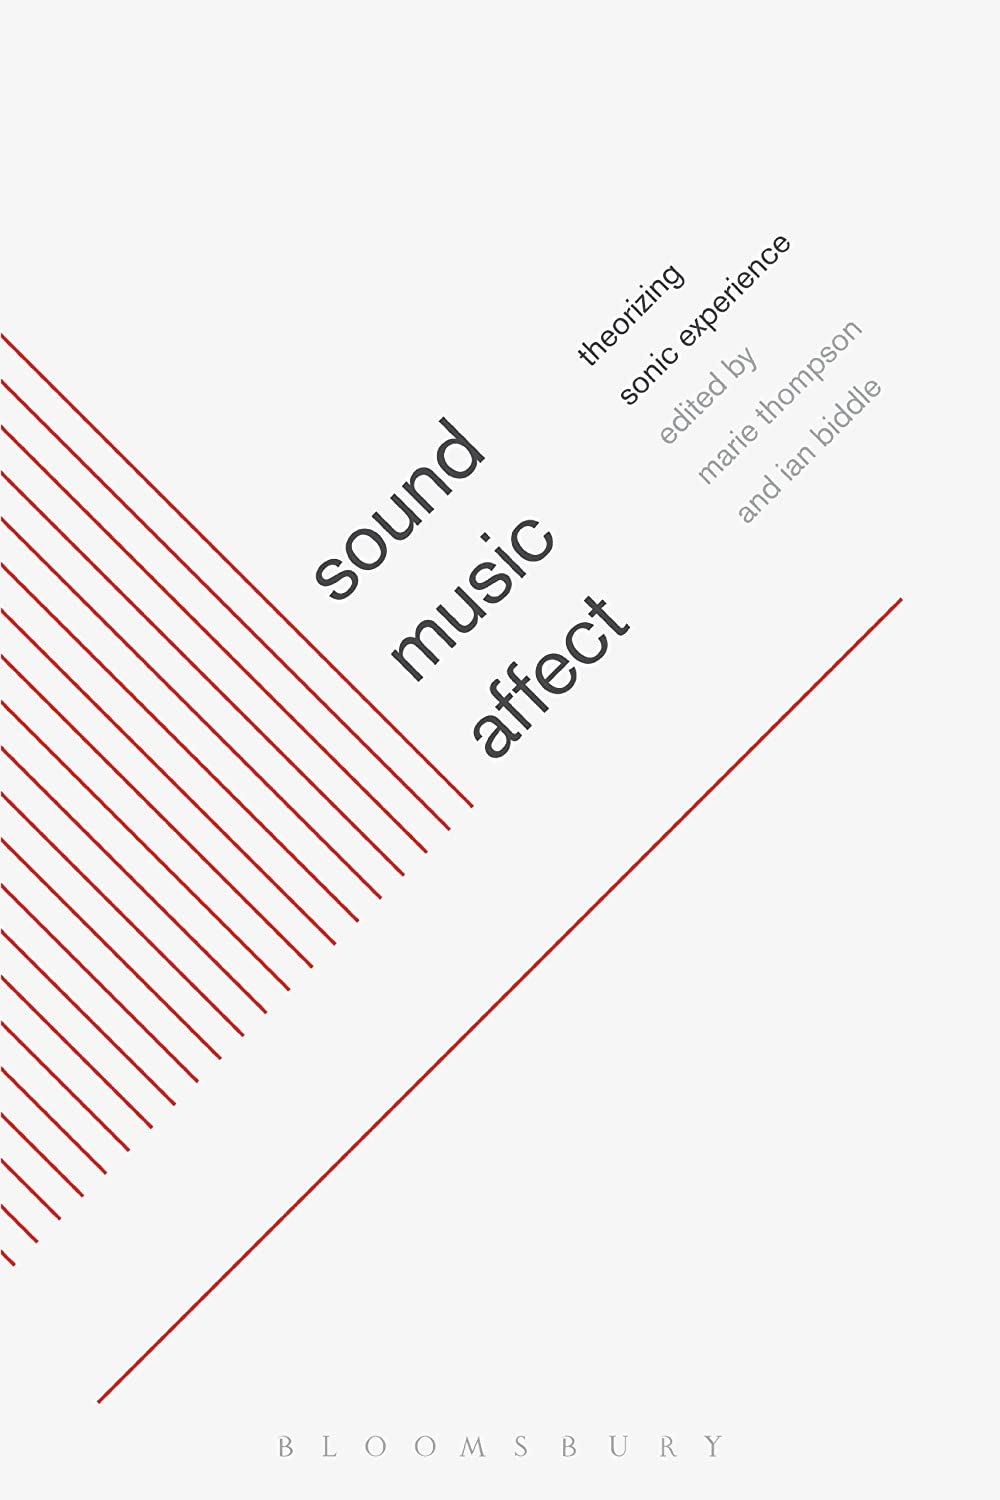 Sound, Music, Affect: Theorizing Sonic Experience Ian Biddle and Marie Thompson